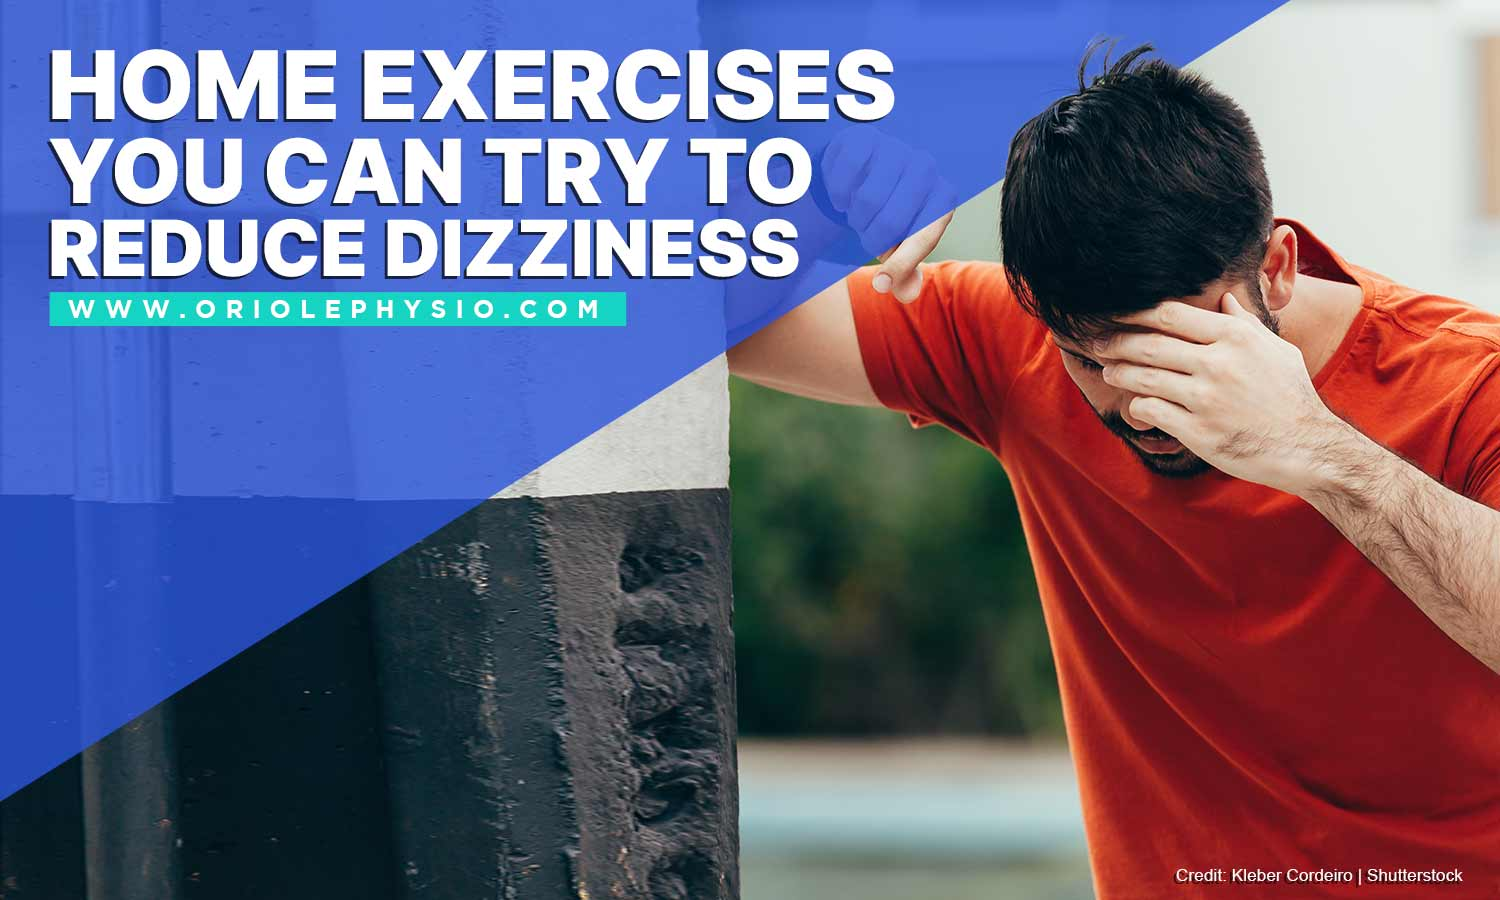 Home Exercises You Can Try to Reduce Dizziness